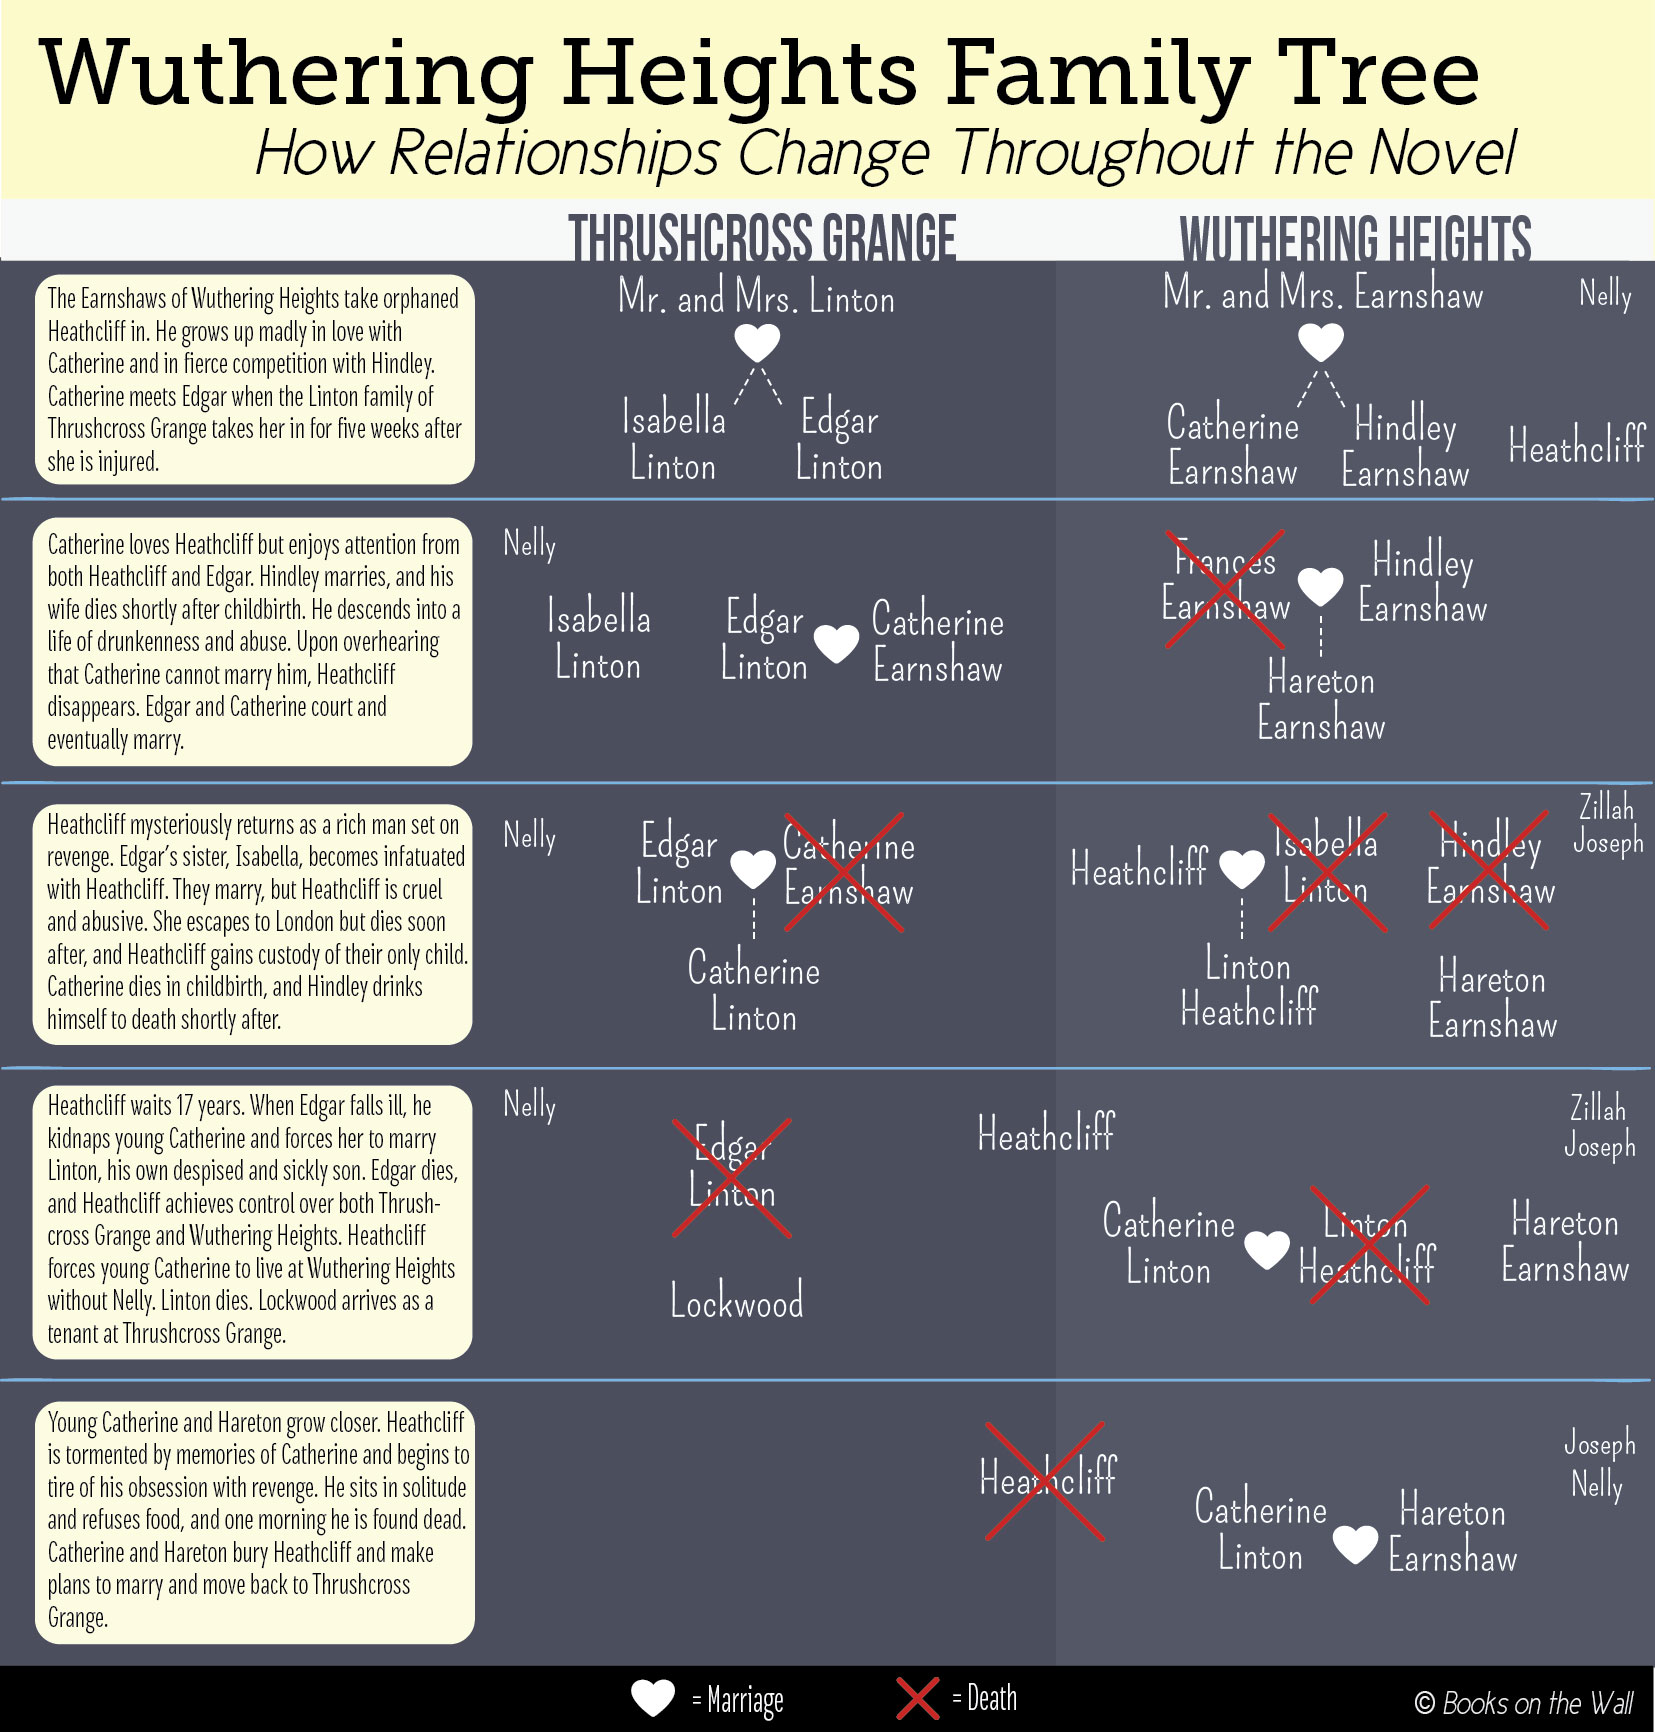 wuthering heights family tree by books on the wall wuthering heights family tree over time complex character list